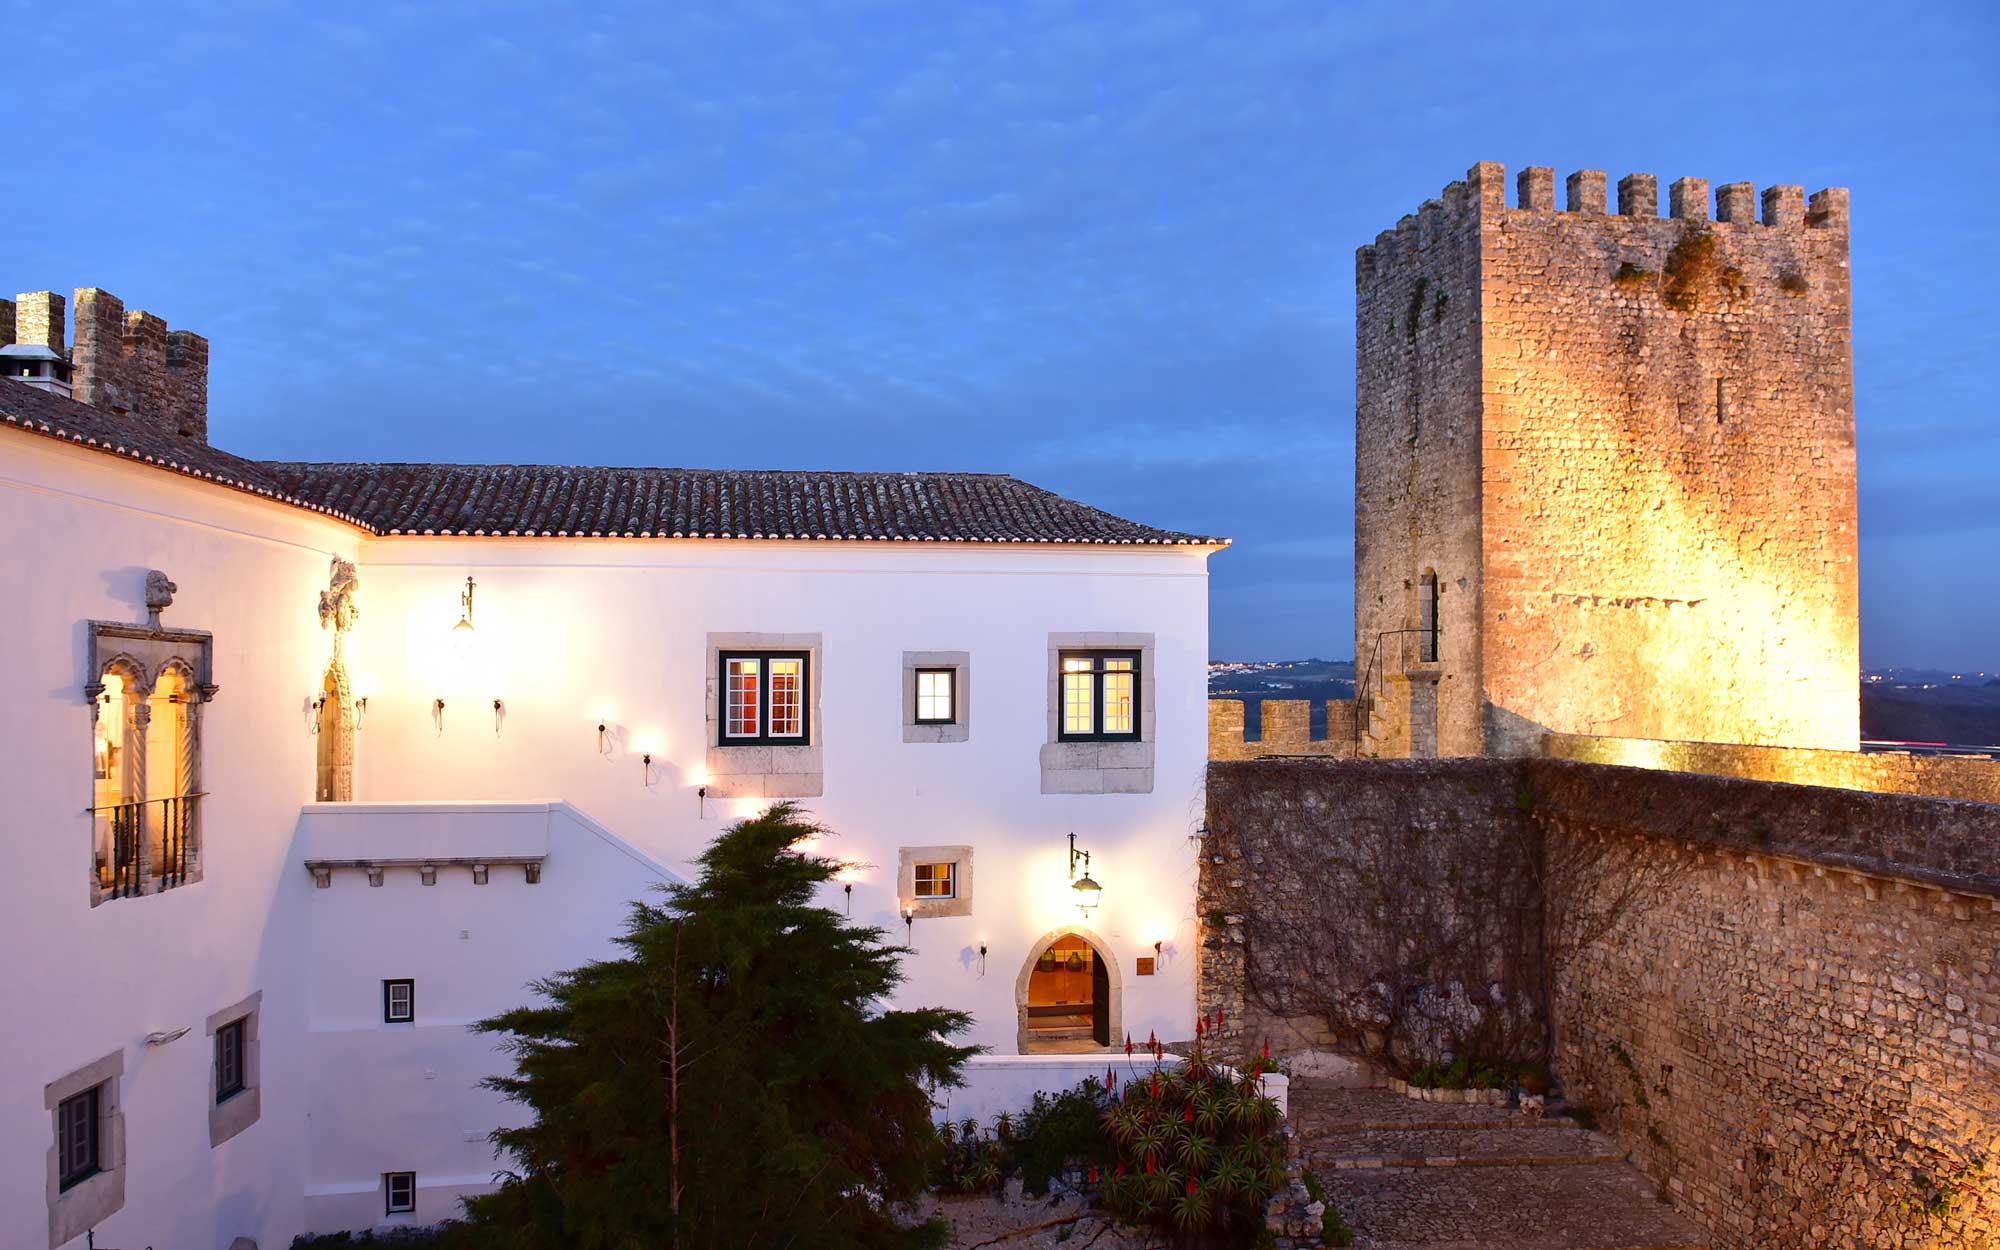 What It's Like to Spend a Night in a Medieval Castle